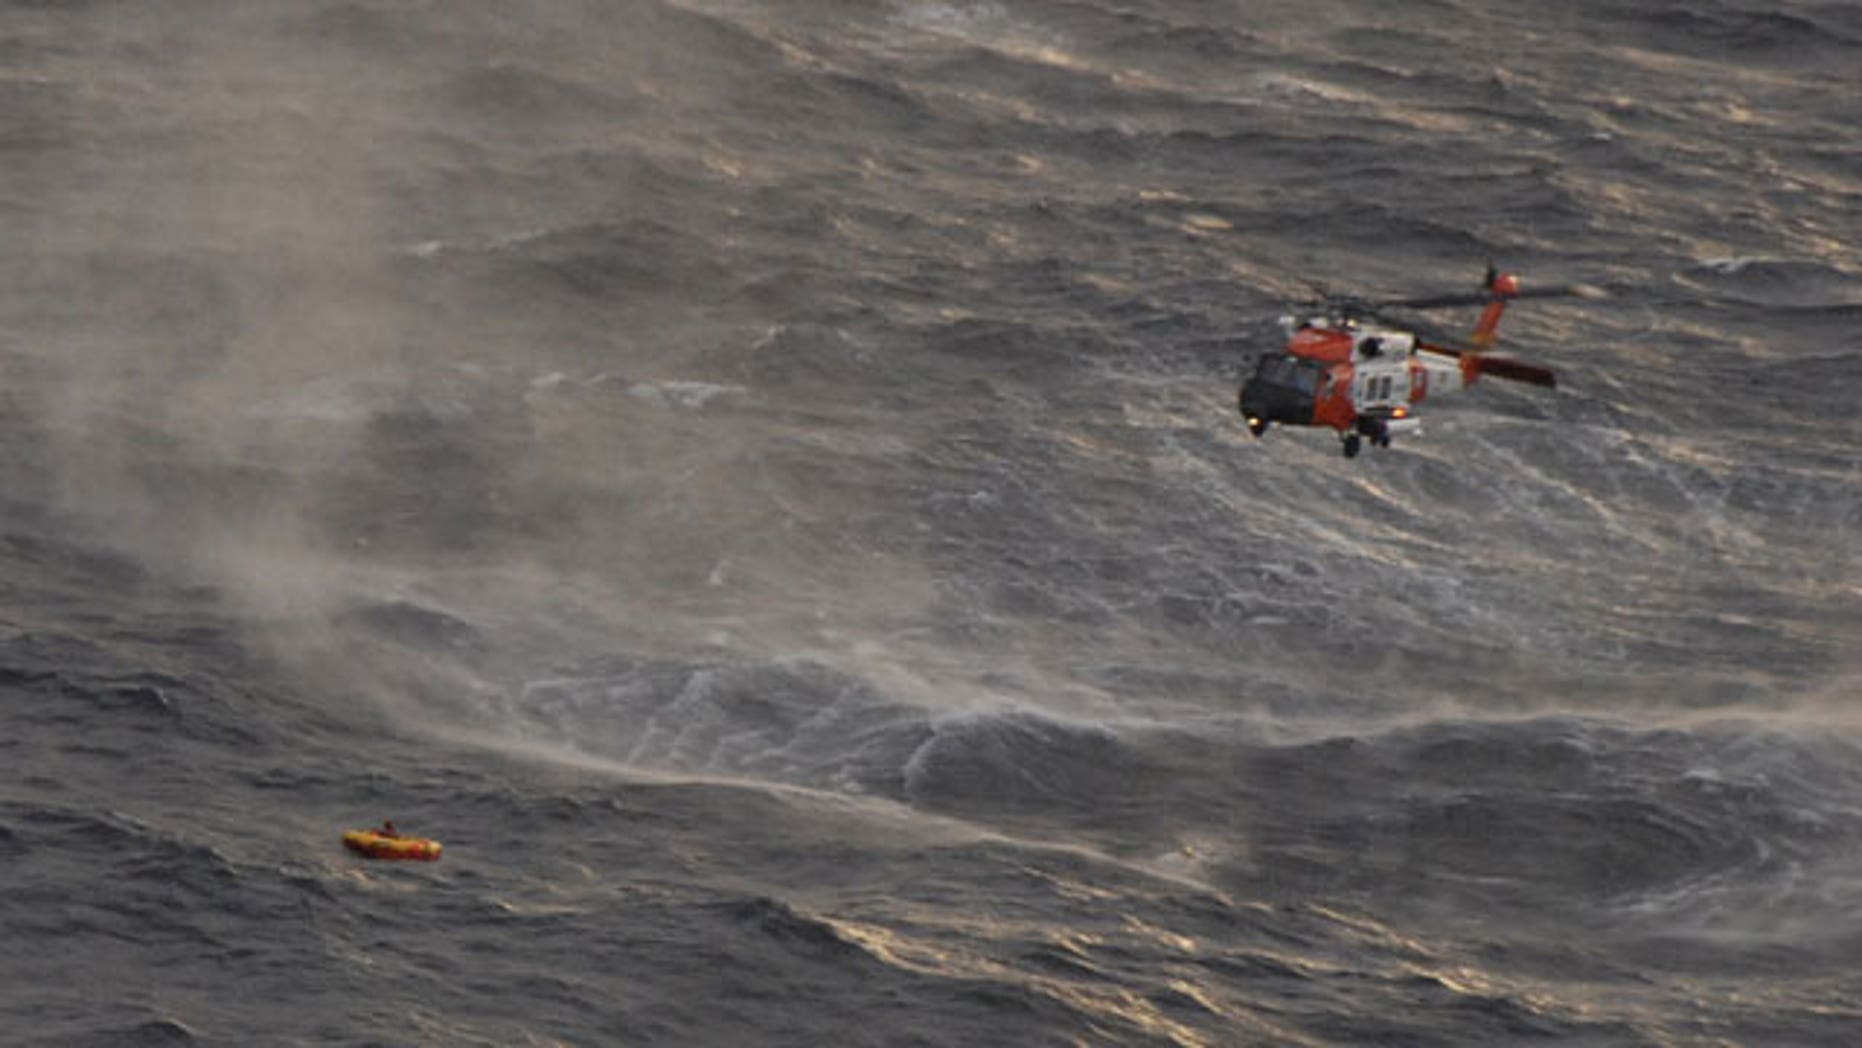 The crew of a Coast Guard Kodiak-based rescue helicopter prepares to rescue one of four crewman from the fishing vessel Northern Belle who managed to climb into a life raft dropped by a Coast Guard aircraft from Air Station Kodiak 50 miles south of Monatgue Island in the Gulf of Alaska. The Northern Belle crew issued a mayday call and abandoned the 75-foot Seattle-based vessel into the chilly waters of the Gulf of Alaska.